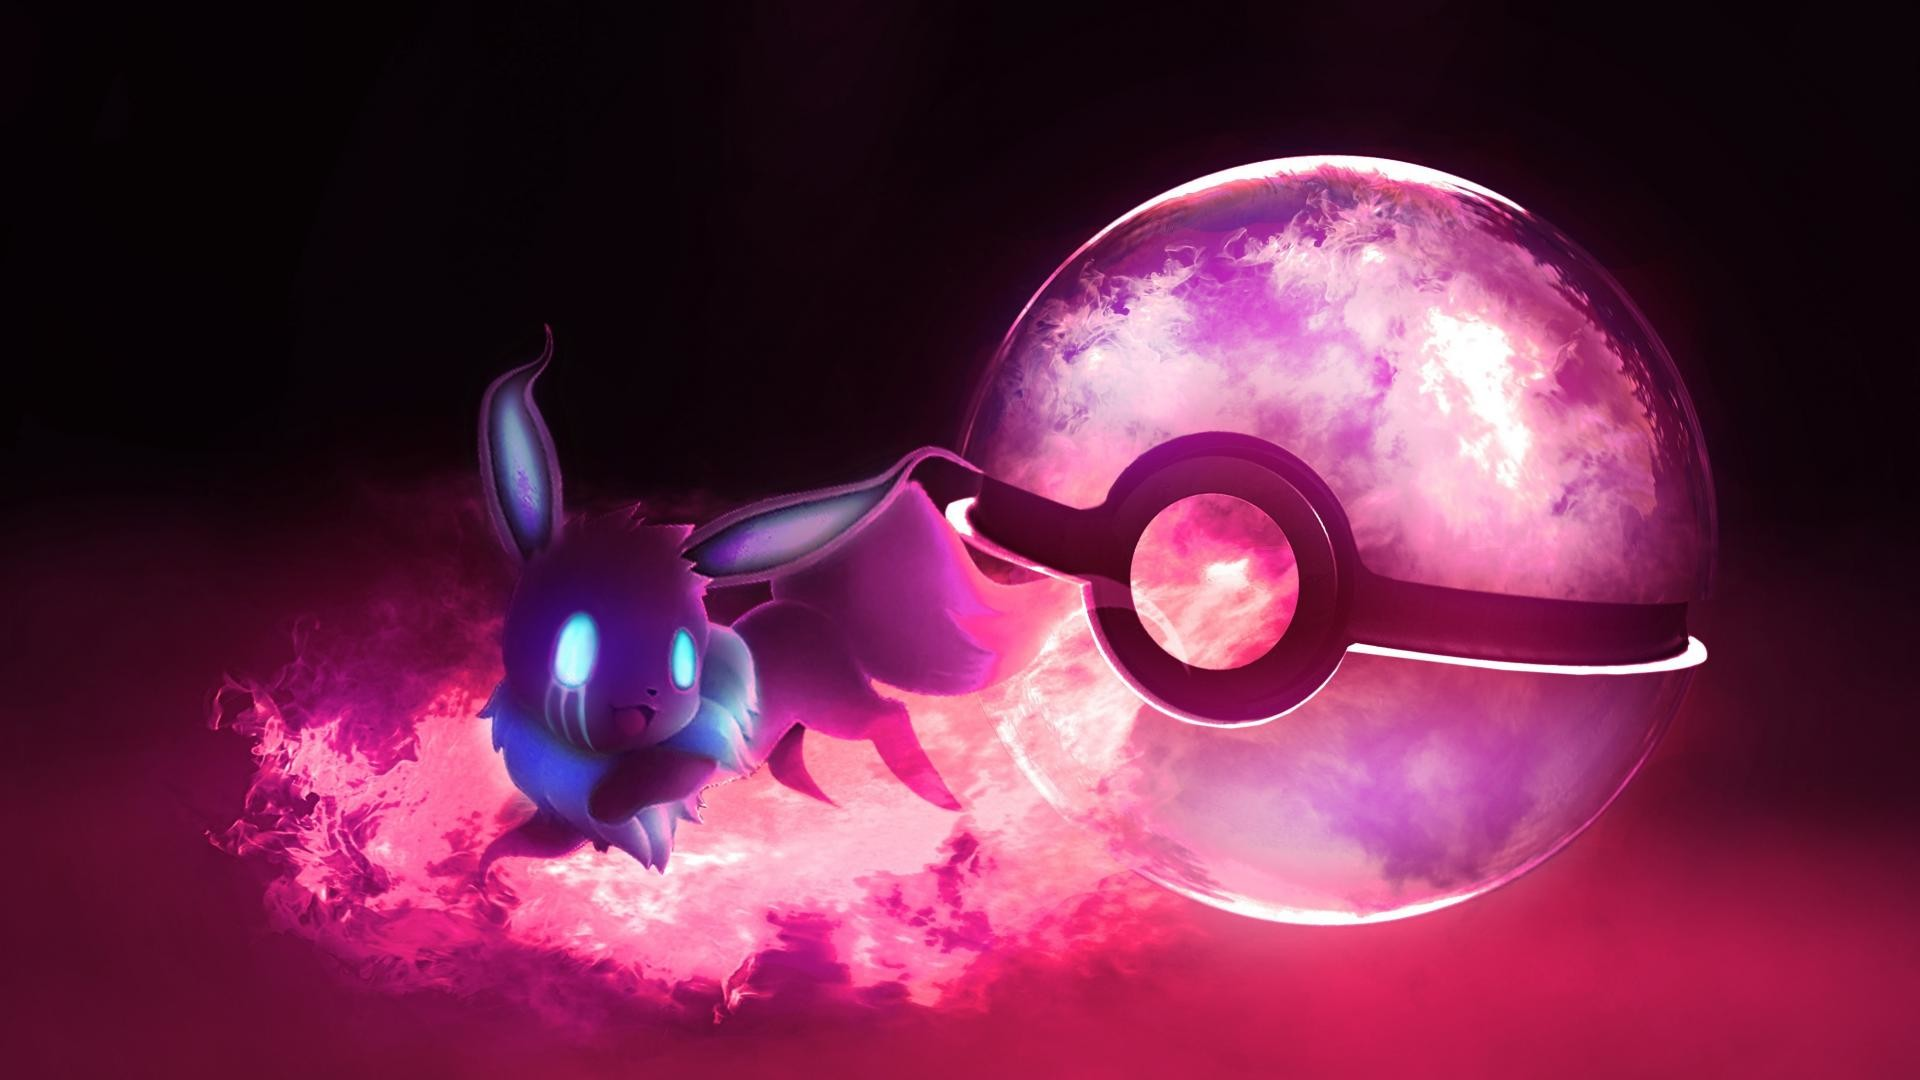 1920x1080 Eevee ghost pokeball wallpaper | (53637)